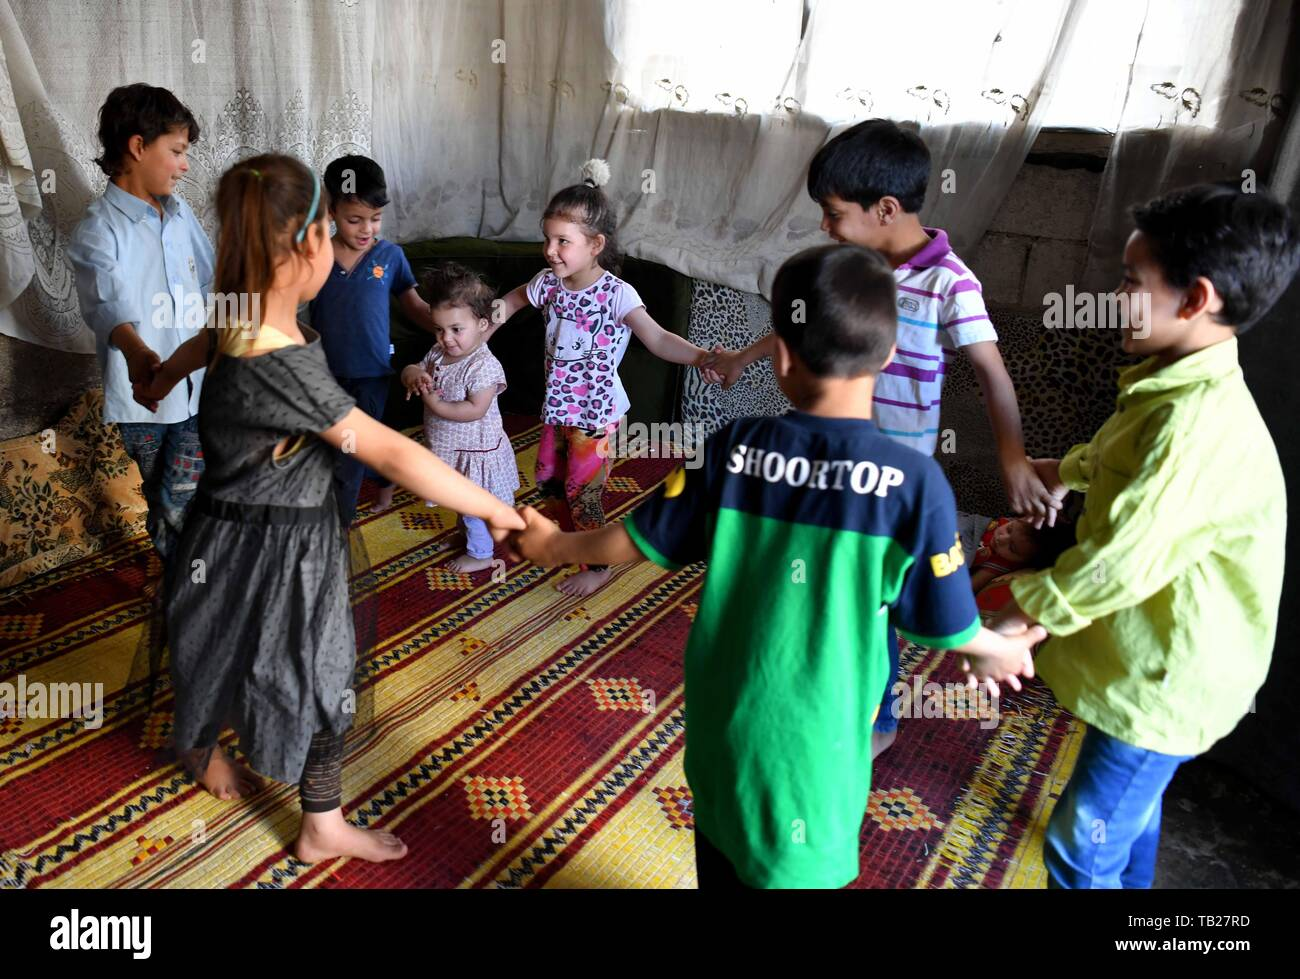 """Damascus, Syria. 28th May, 2019. Ibrahim Mossa (1st R) plays with his siblings and cousins in the Jaramana suburb of Damascus, Syria, on May 28, 2019. For Hussain Mossa, whose childhood was peaceful and worth remembering, his son Ibrahim is not so lucky as him. Hussain's older son, Ibrahim, was born in 2011 when the Syrian crisis began. In Syria, those who were born during the war were regarded as """"Generation of War."""" They were unable to have a normal or healthy childhood like many of their parents did. Credit: Ammar Safarjalani/Xinhua/Alamy Live News Stock Photo"""